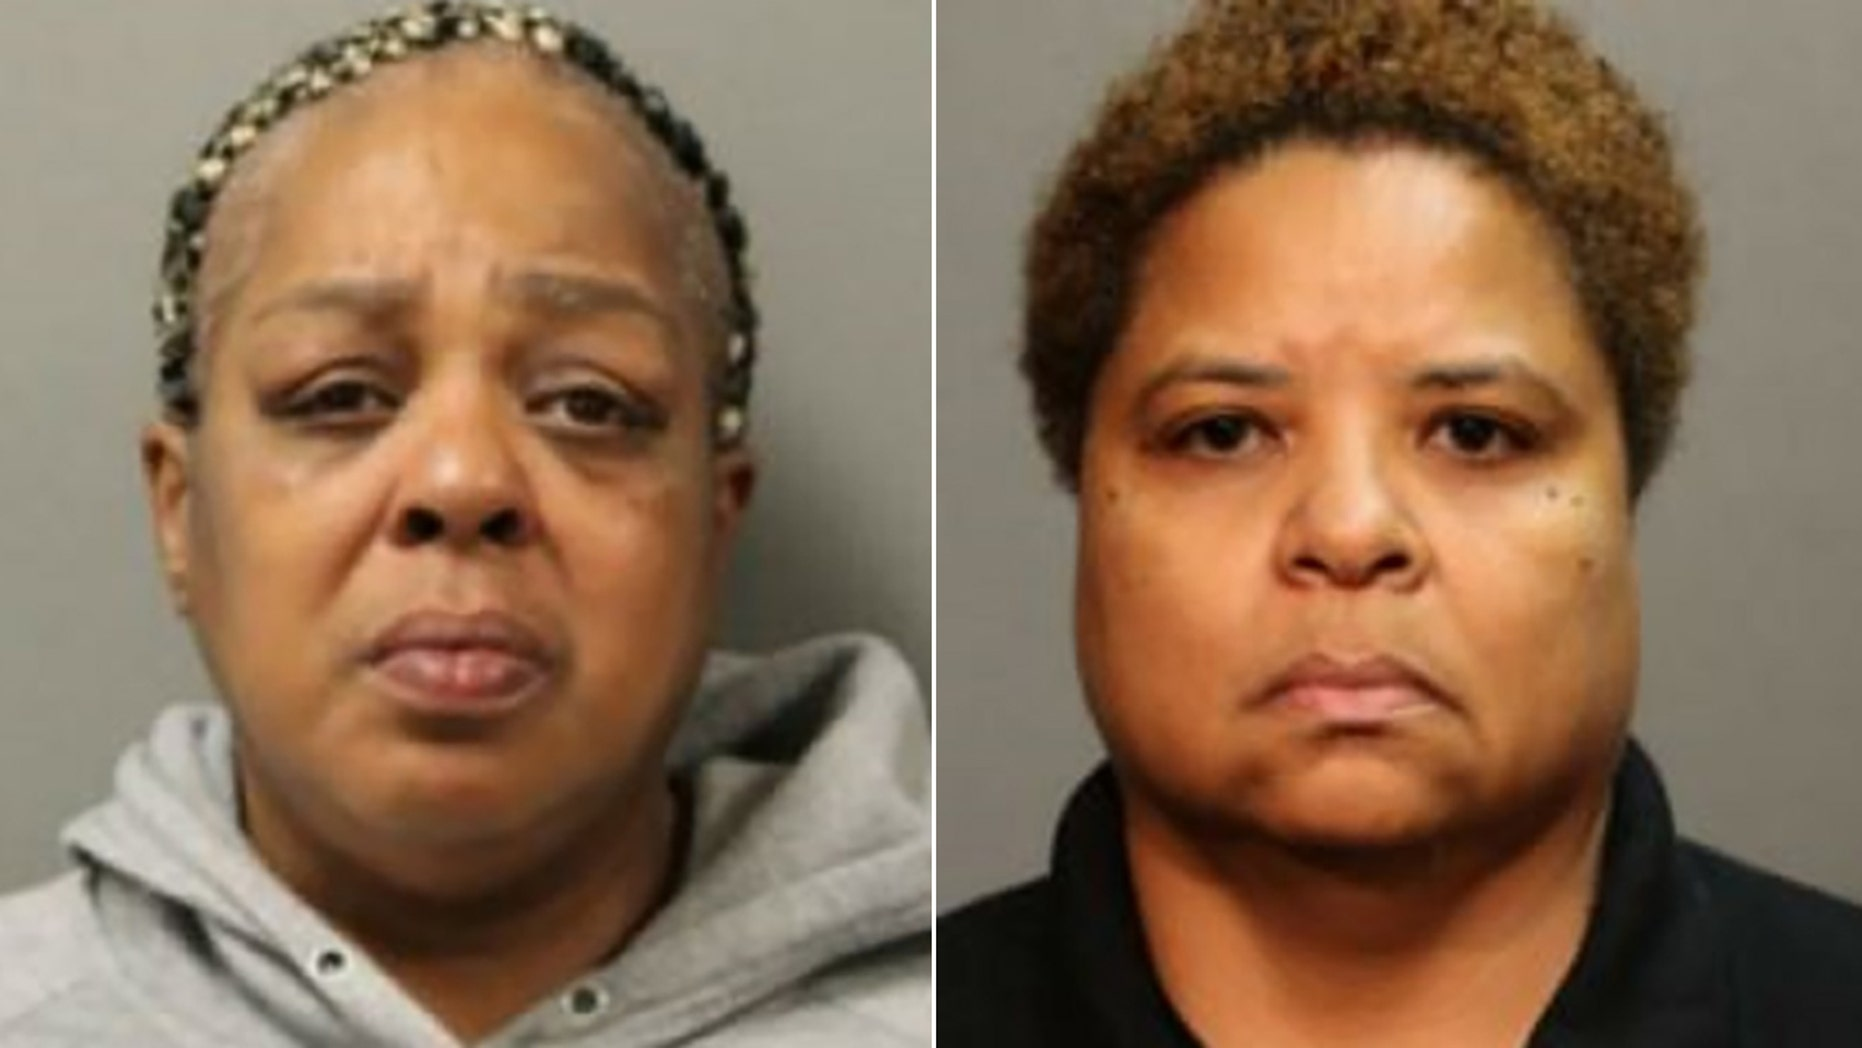 Juanita Tyler and Kristen Haynes are named as defendants in a lawsuit filed by the mother of a 9-year-old boy, authorities say.